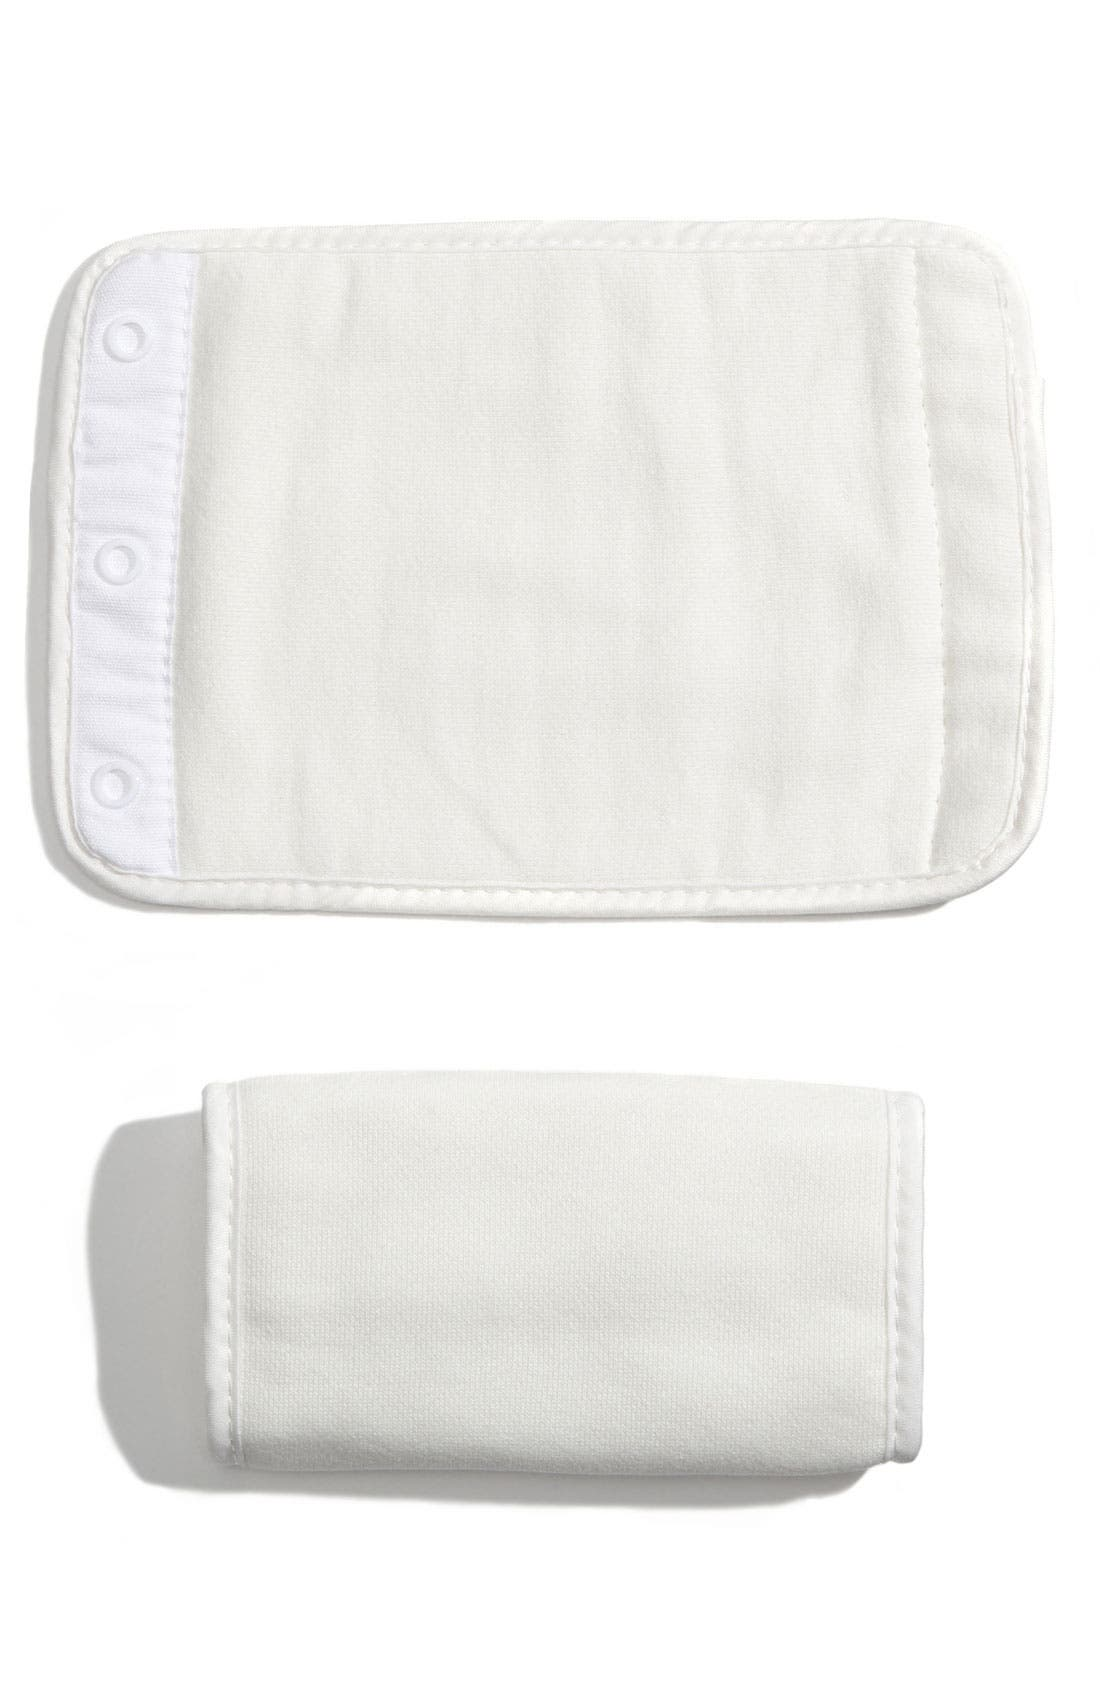 Alternate Image 1 Selected - ERGObaby Teething Pads (Set of 2)